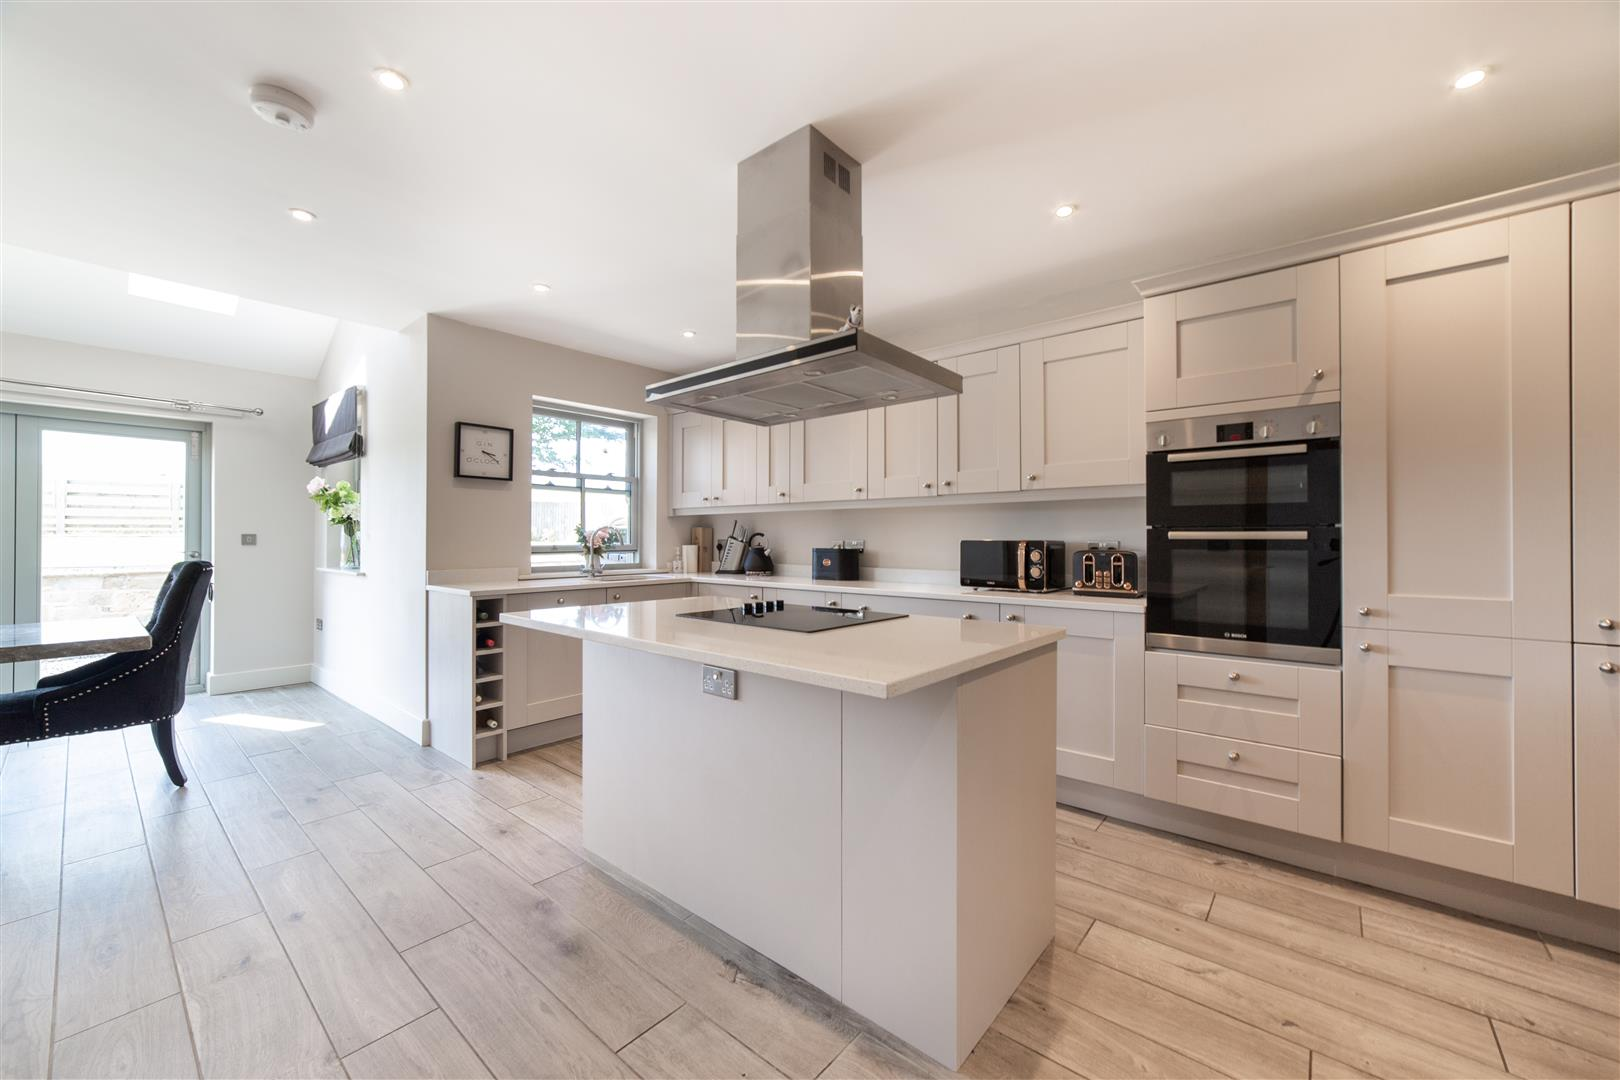 4 bed detached house for sale, Hexham  - Property Image 2